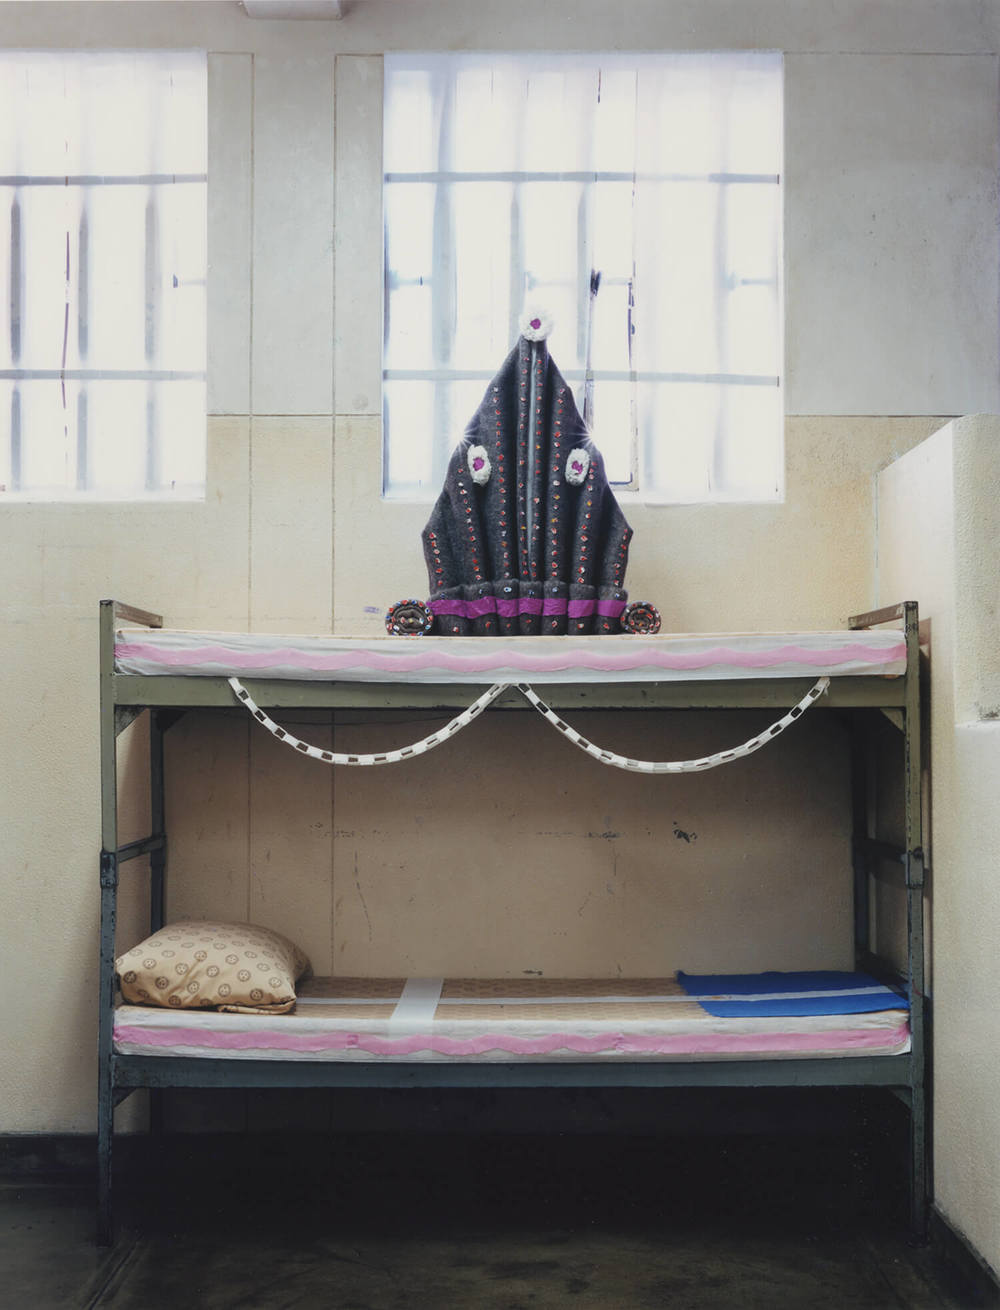 Pollsmoor Maximum Security Prison, South Africa, C-type print, 16 x 20 inches, 2003